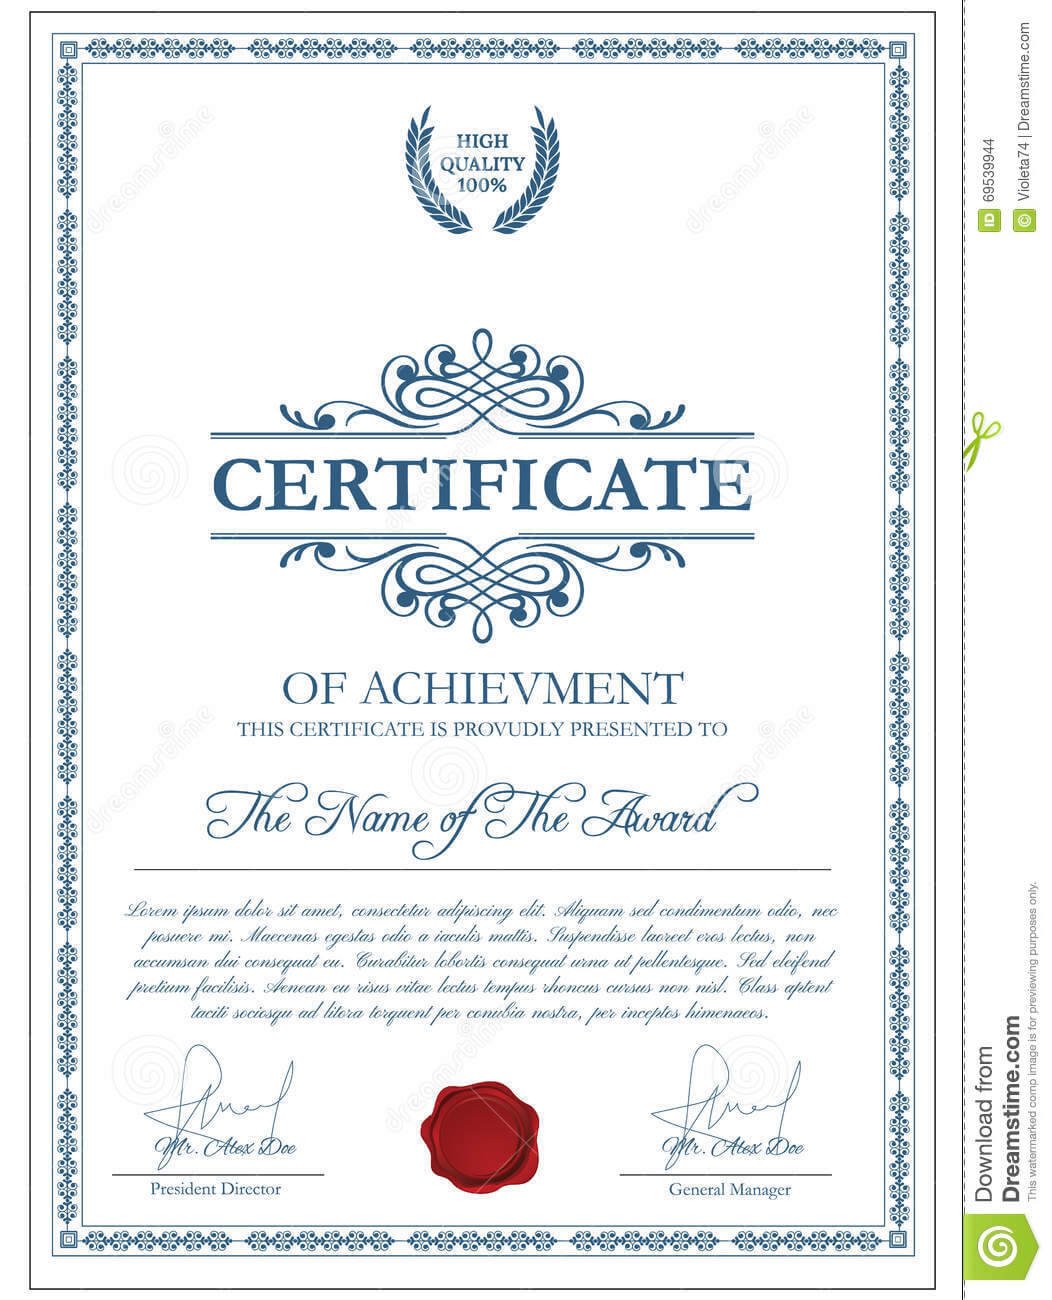 Certificate Template With Guilloche Elements. Stock Vector Intended For Validation Certificate Template